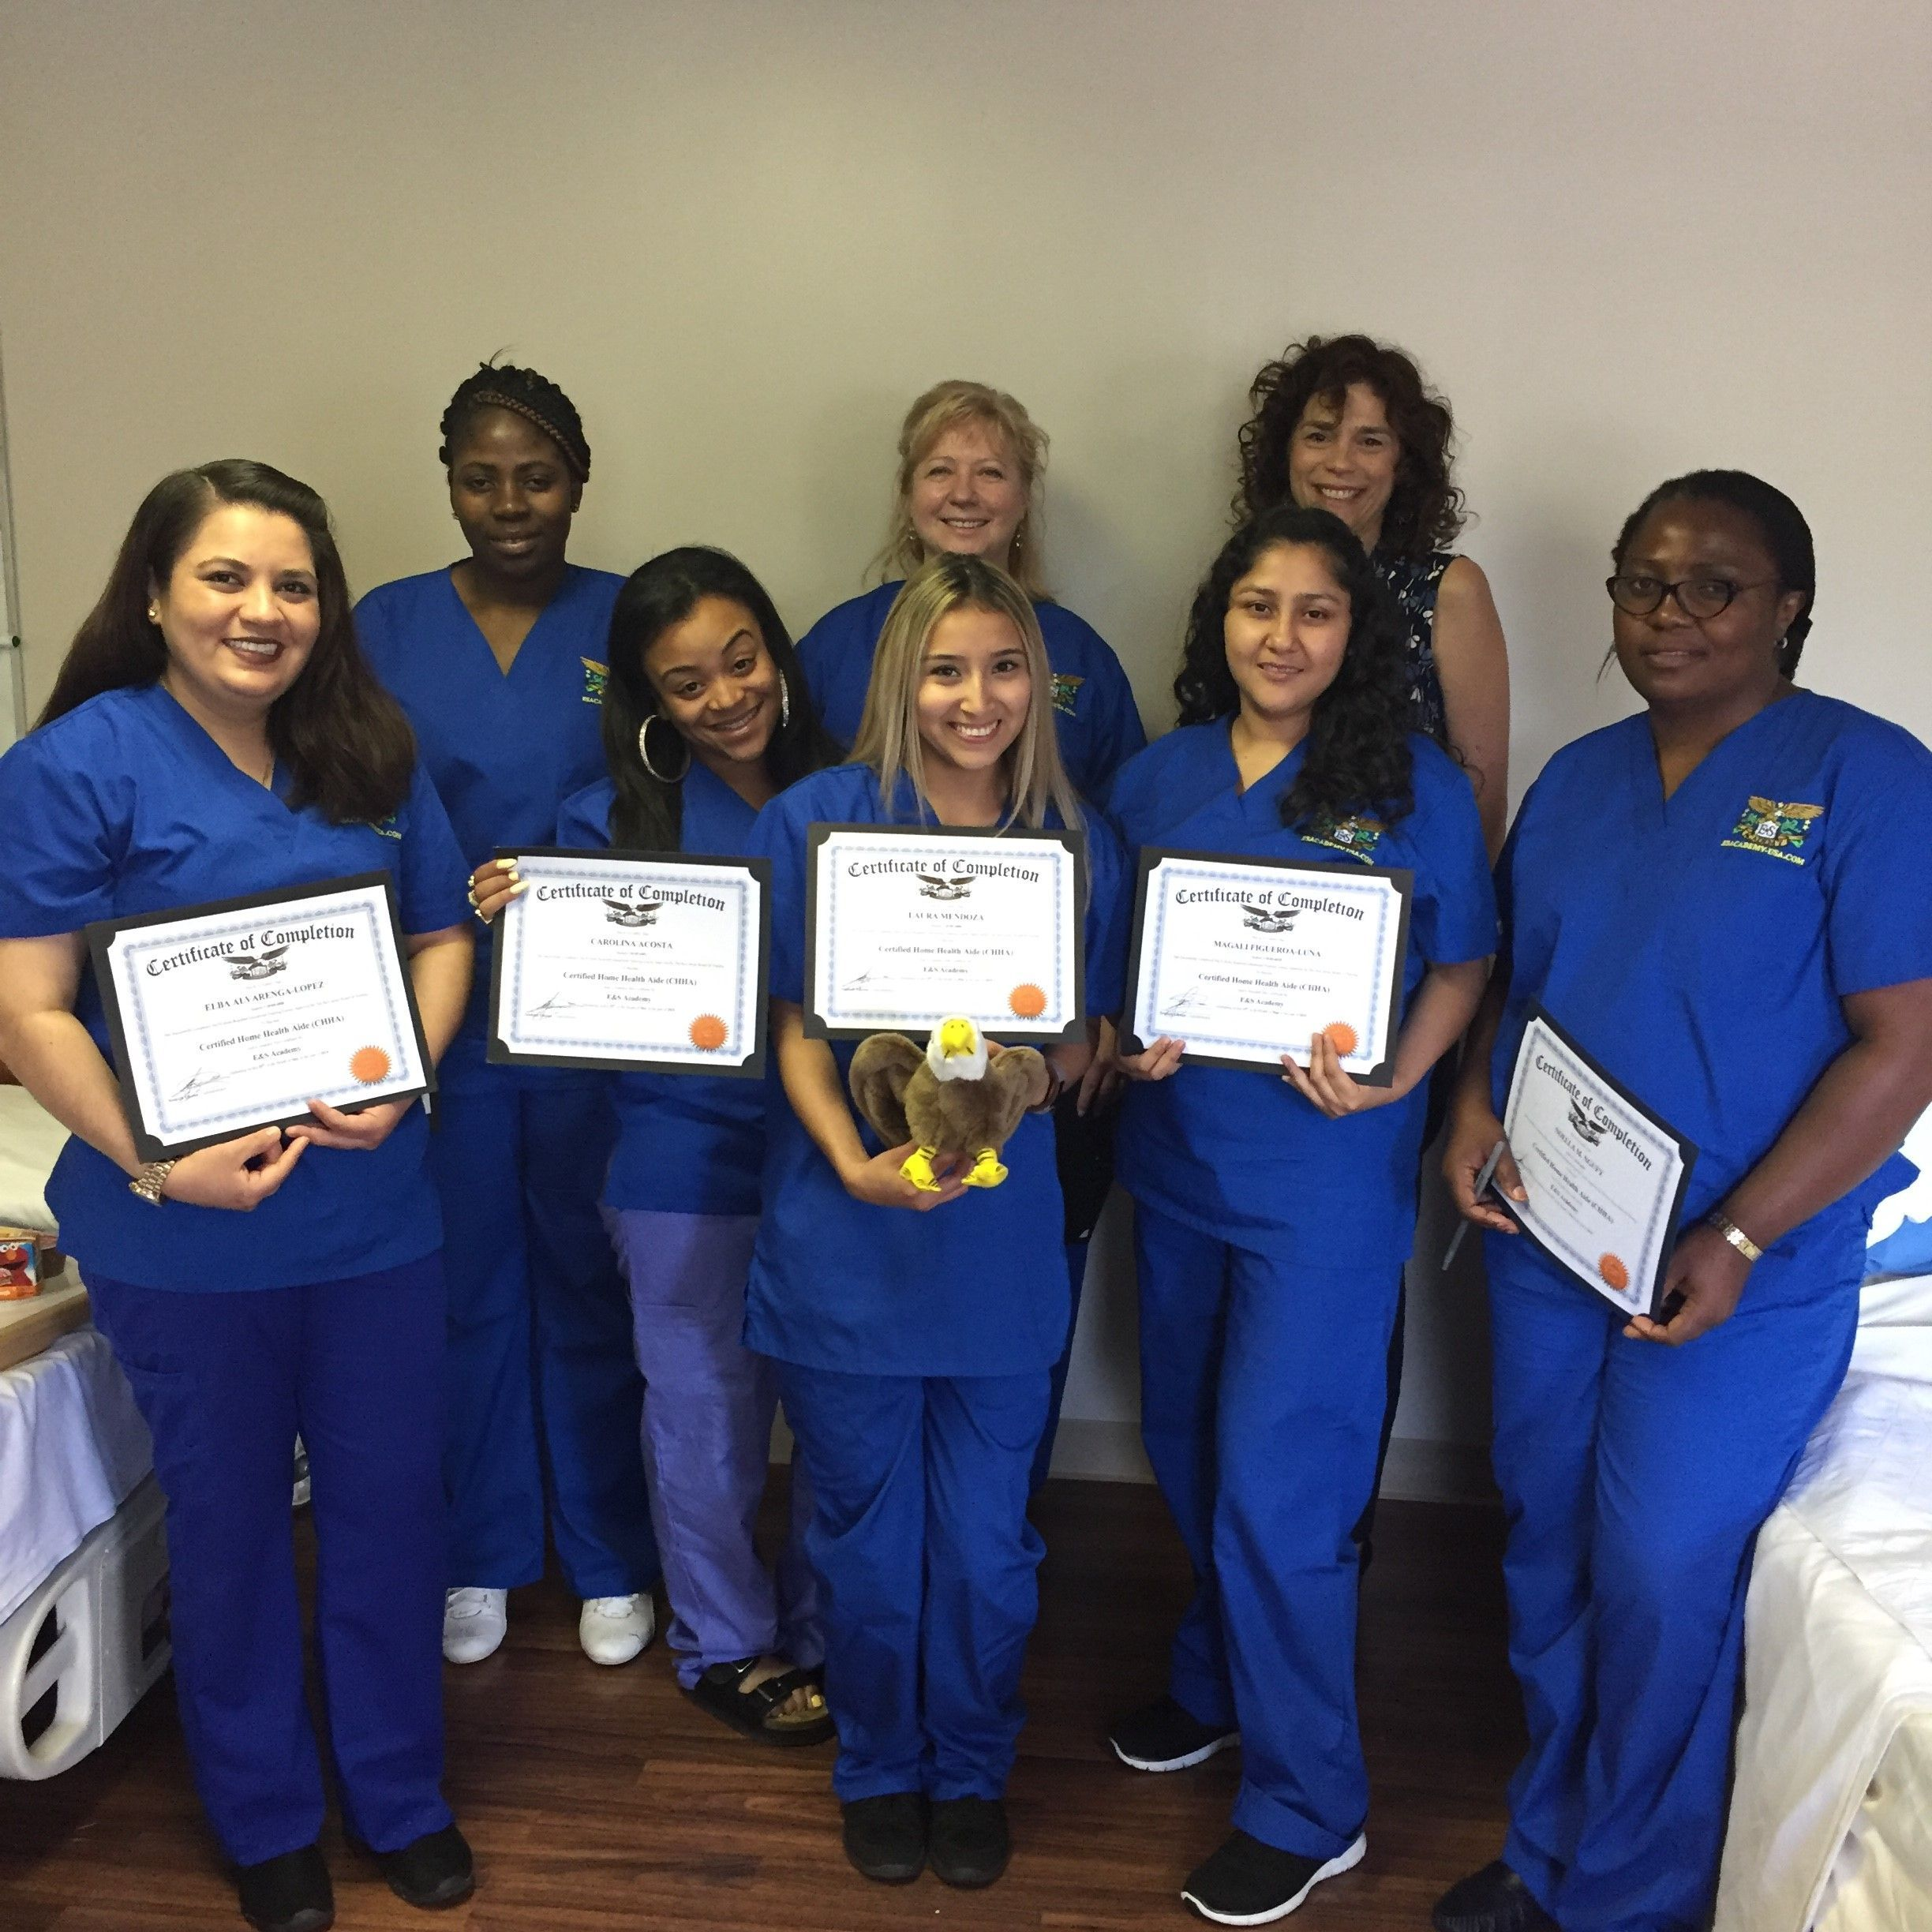 Congratulations To Our May Home Health Aide Students For Completing Our Training Program In South Plainfield E Home Health Aide South Plainfield Home Health